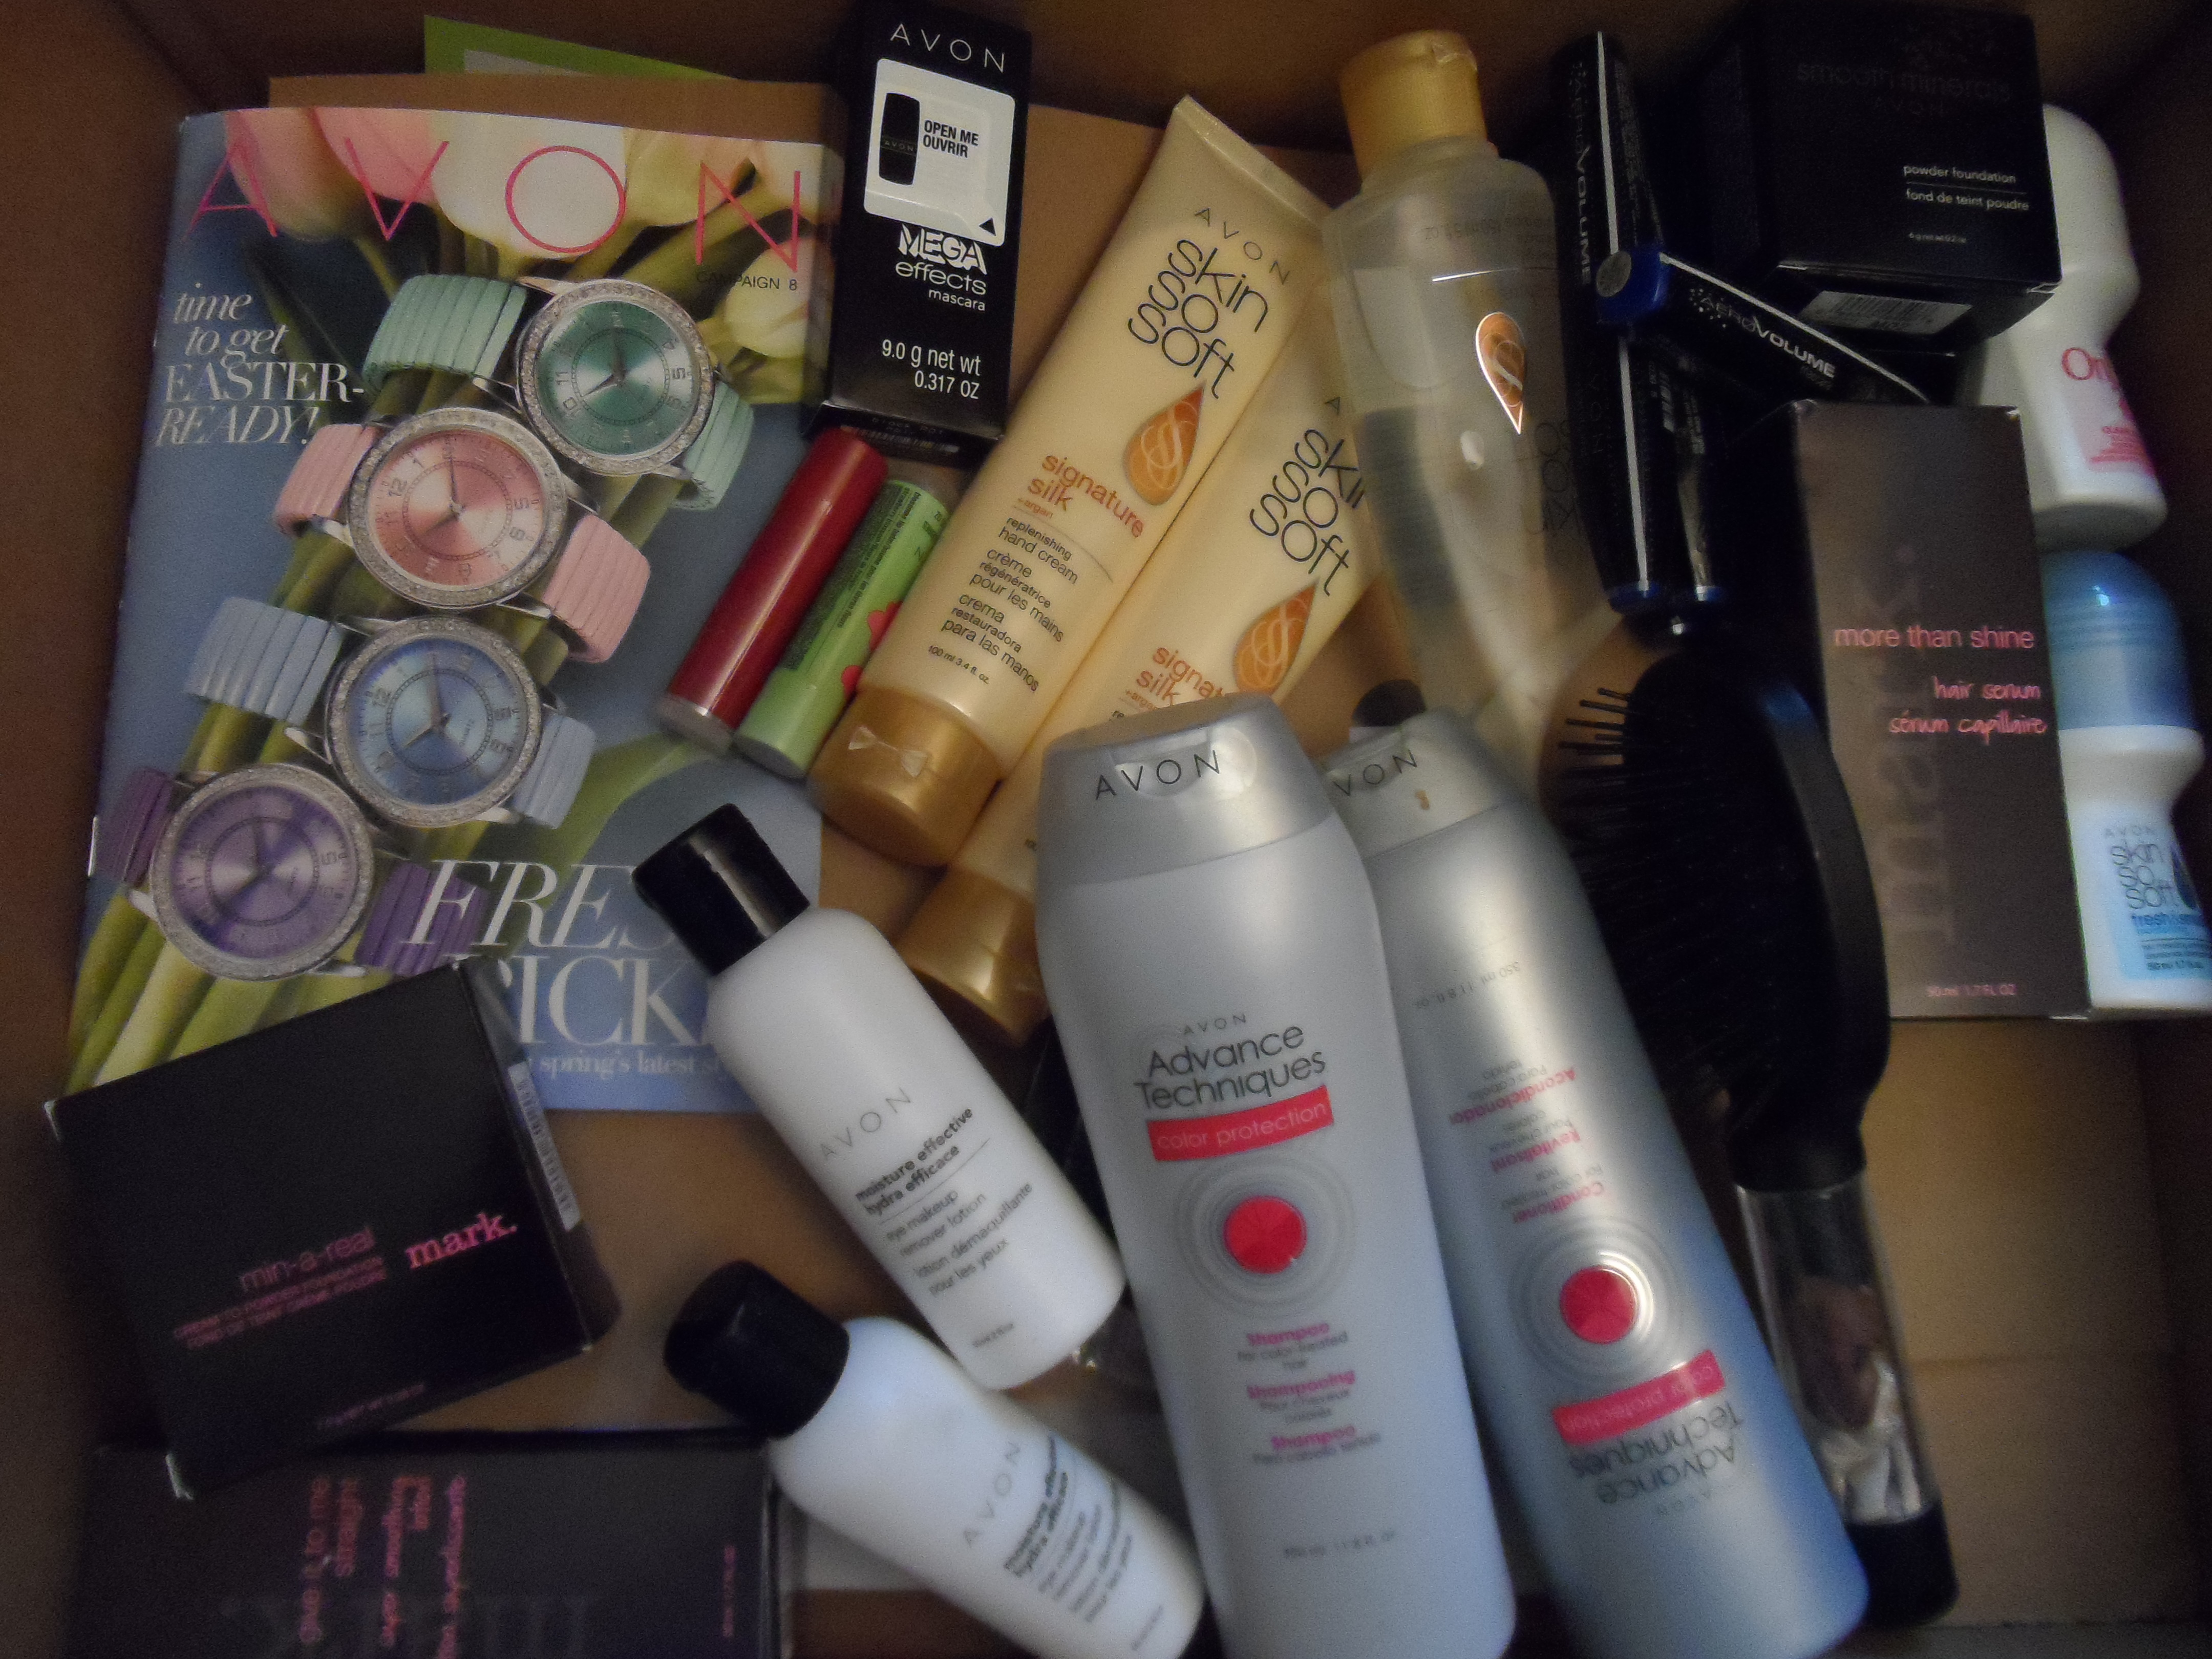 Avon Mark Products Avon And Mark Products And